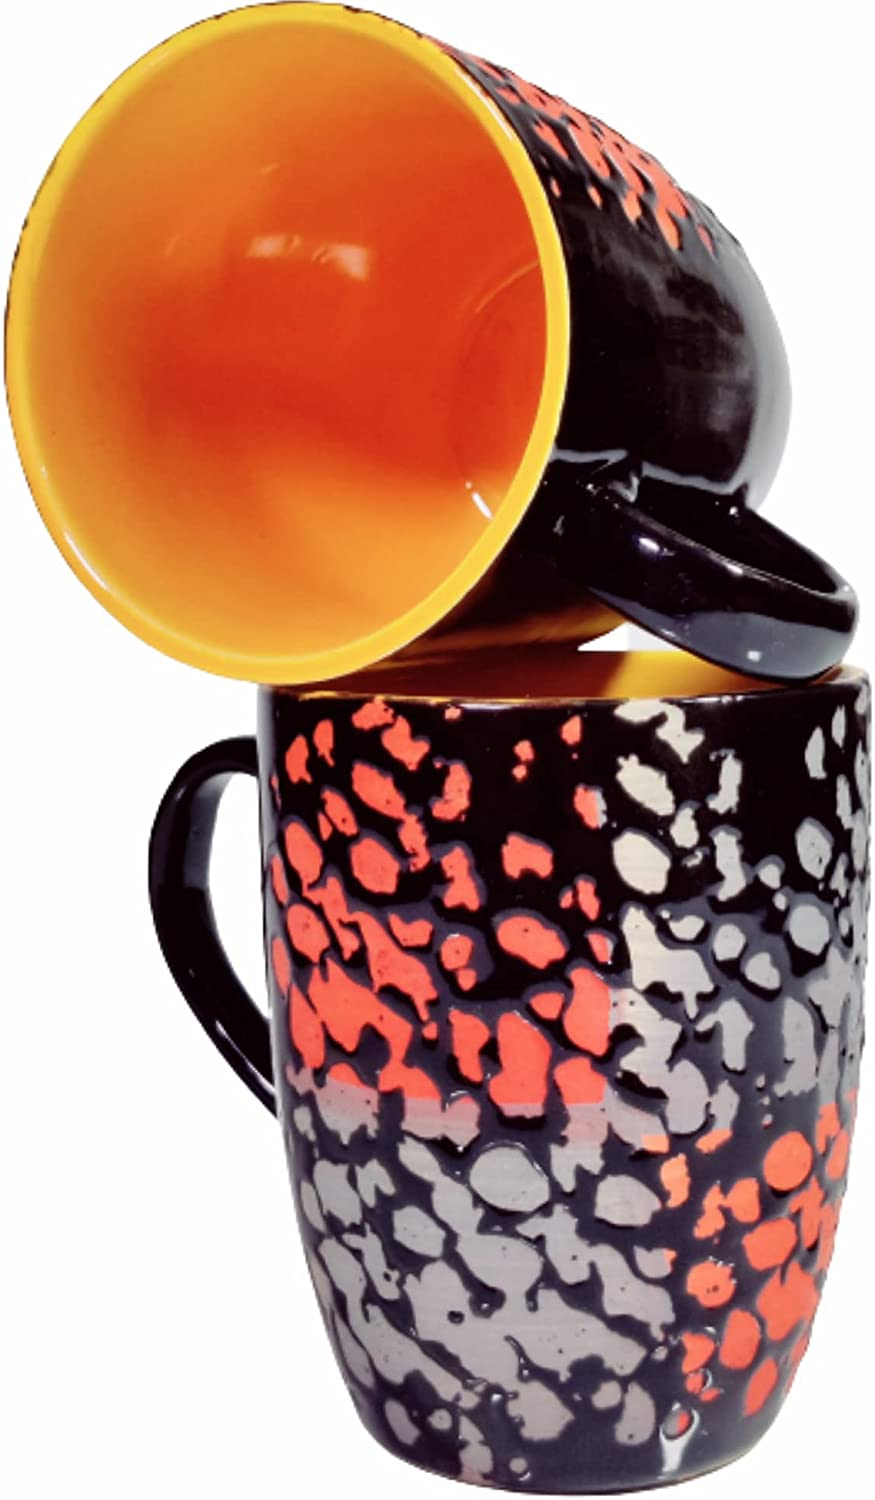 SHIVOW Ceramic Coffee Mugs Max Direct stock discount 57% OFF Set of 320 ML 2 Black Glossy